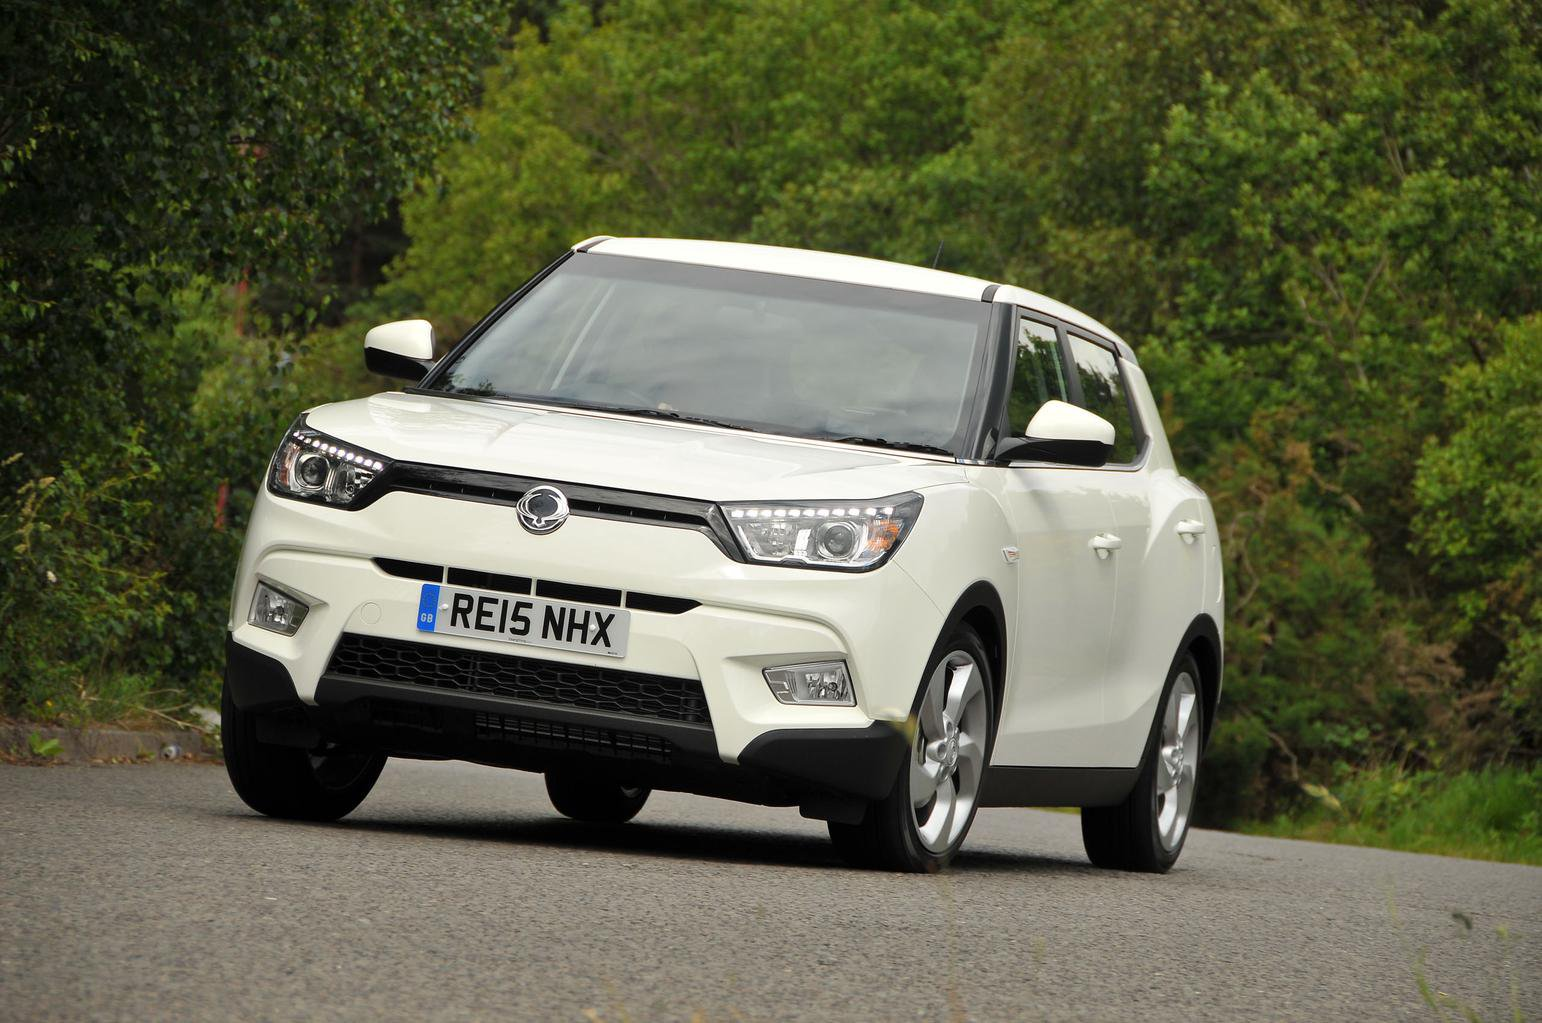 Latest Euro NCAP safety test scores revealed